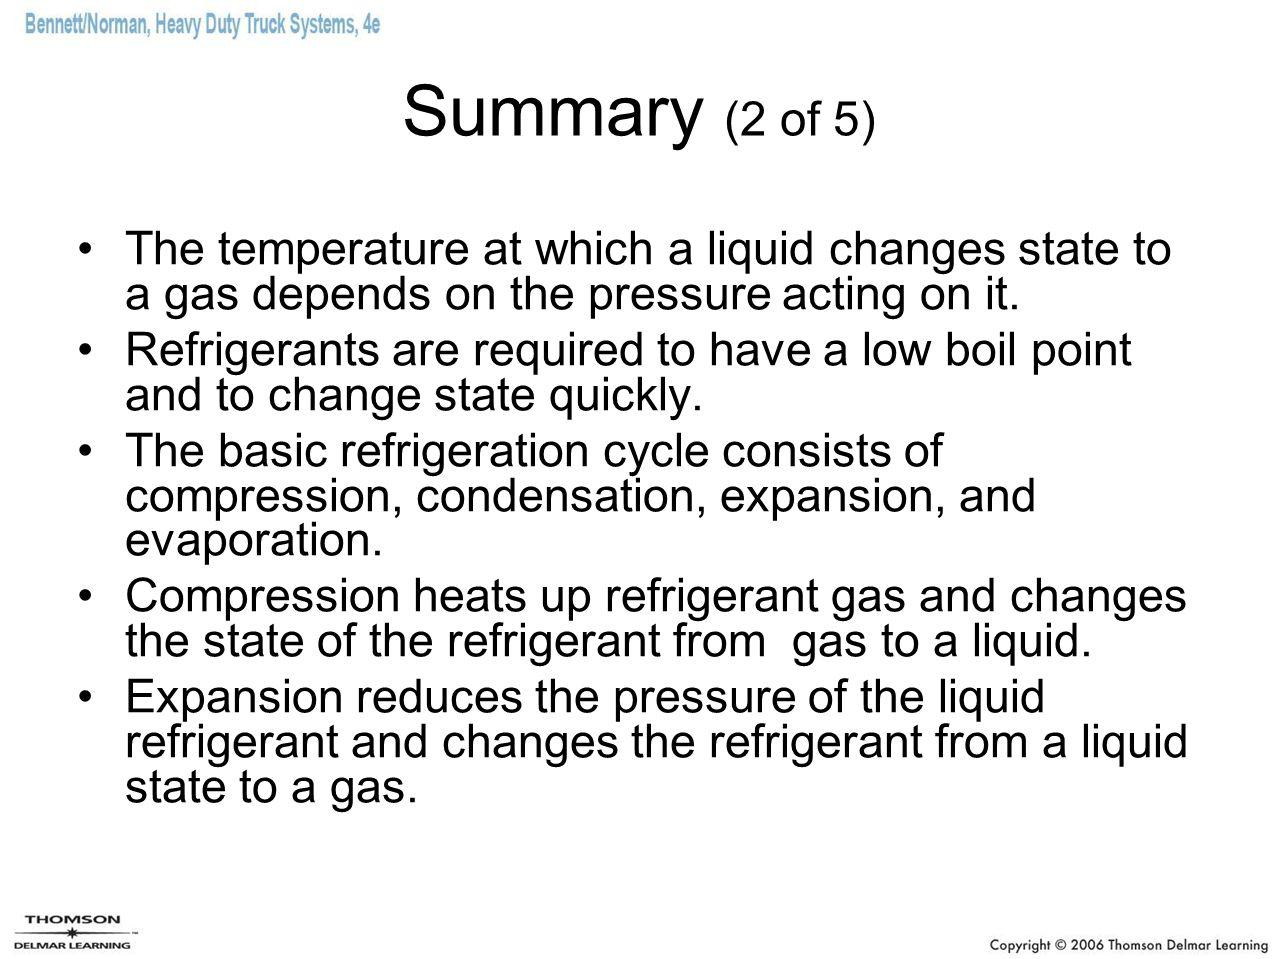 Summary (2 of 5) The temperature at which a liquid changes state to a gas depends on the pressure acting on it. Refrigerants are required to have a lo